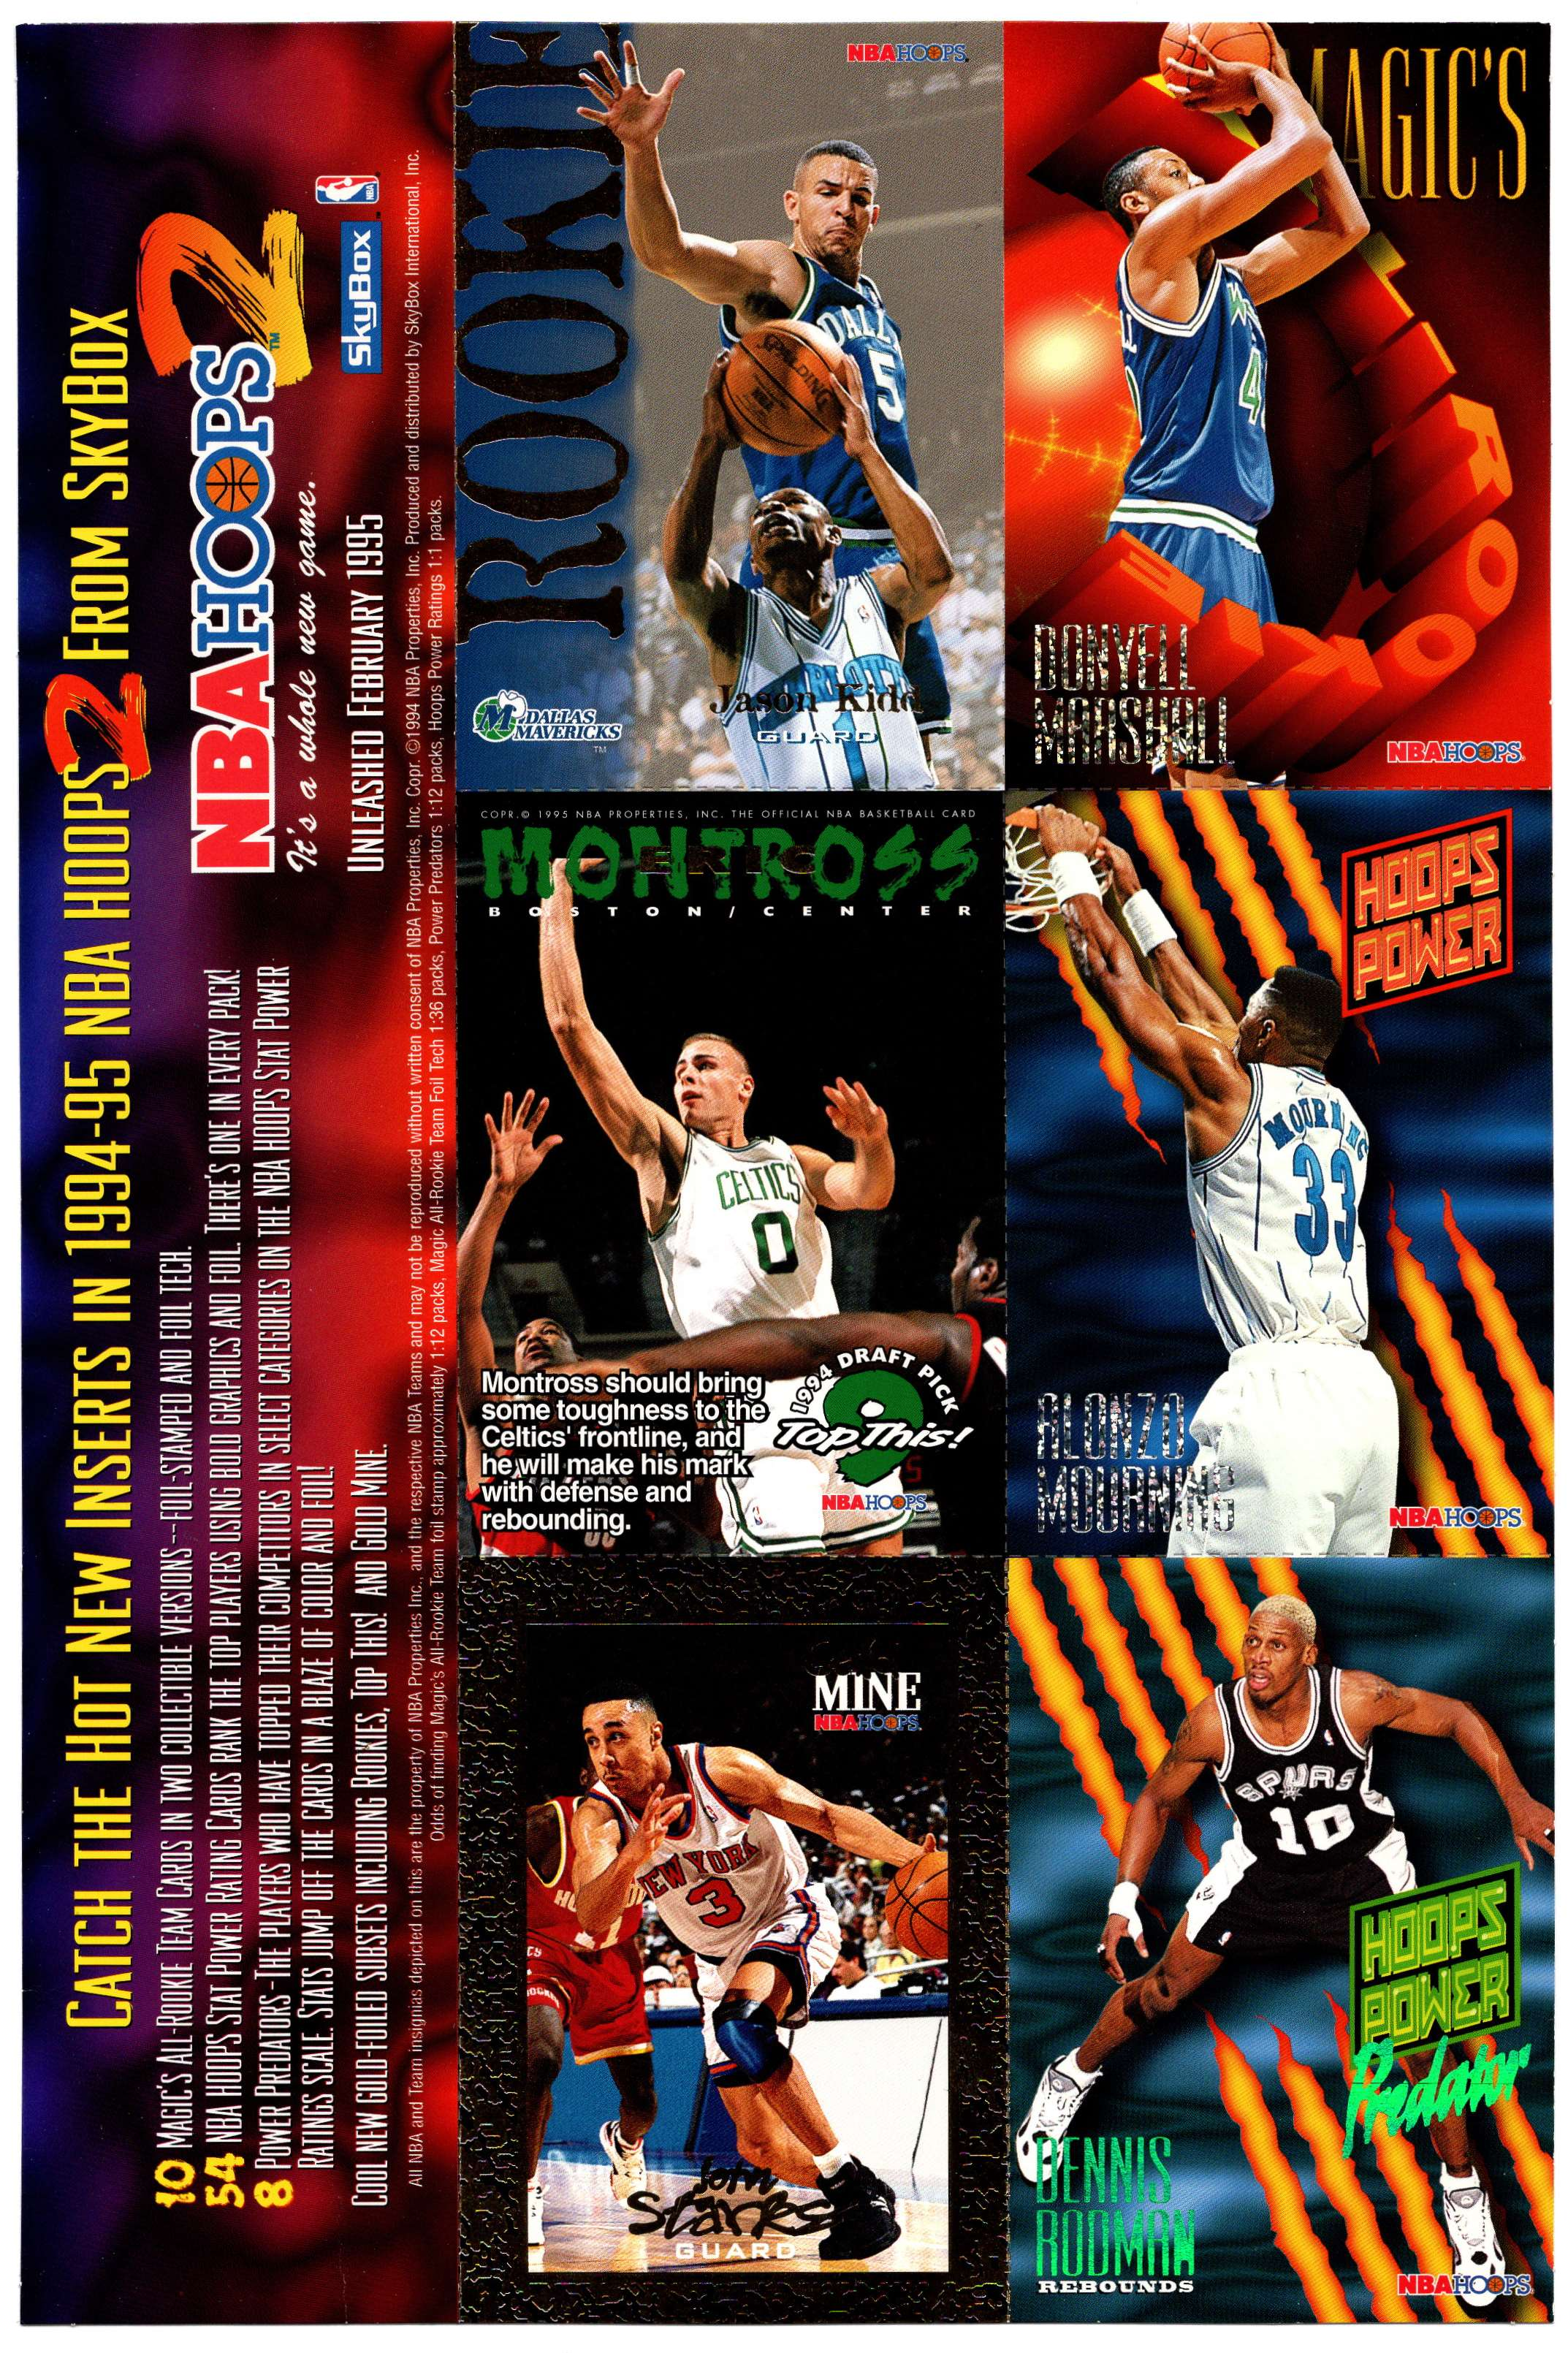 1994-95 Hoops Series 2 Promo Sheet card front image